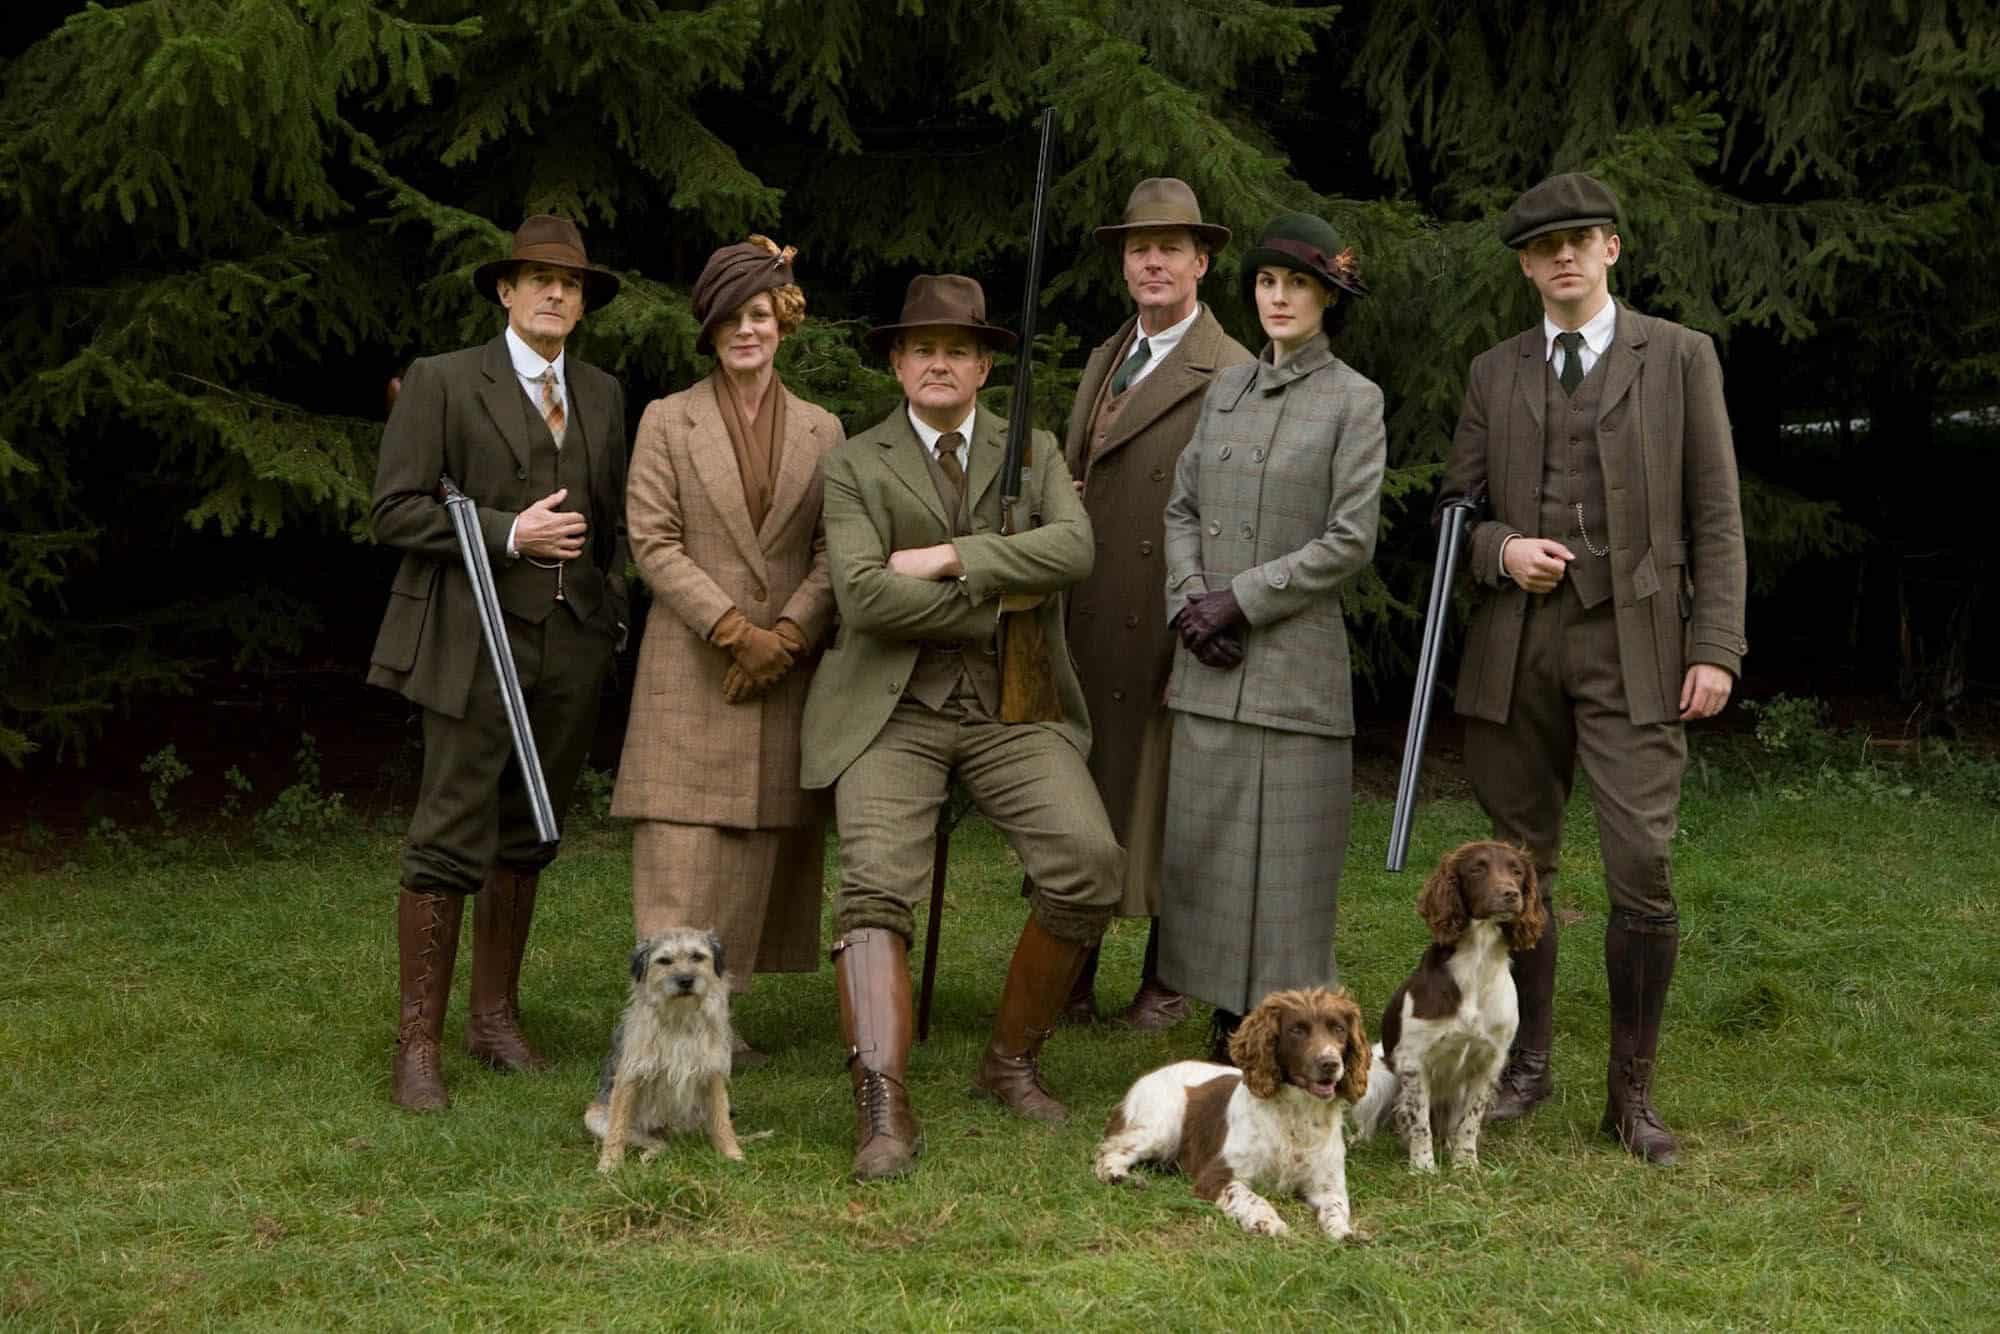 Downton Abbey has brought shooting back into popularity